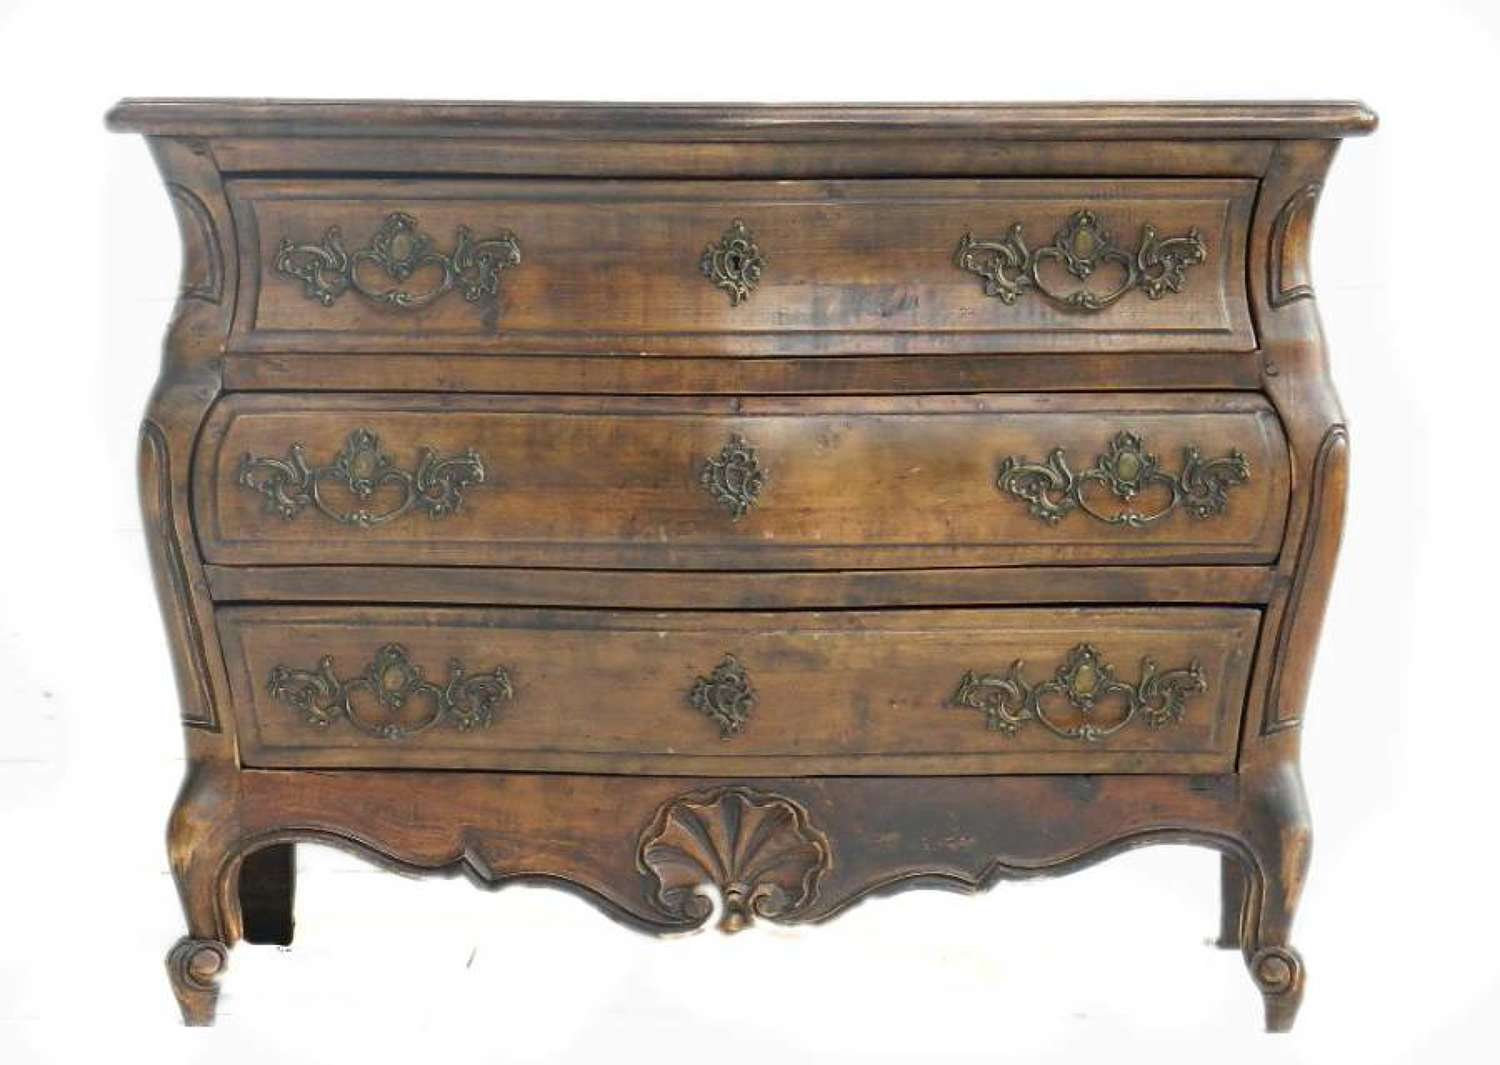 French Provincial Vintage Louis revival Bombe Commode Chest of Drawers